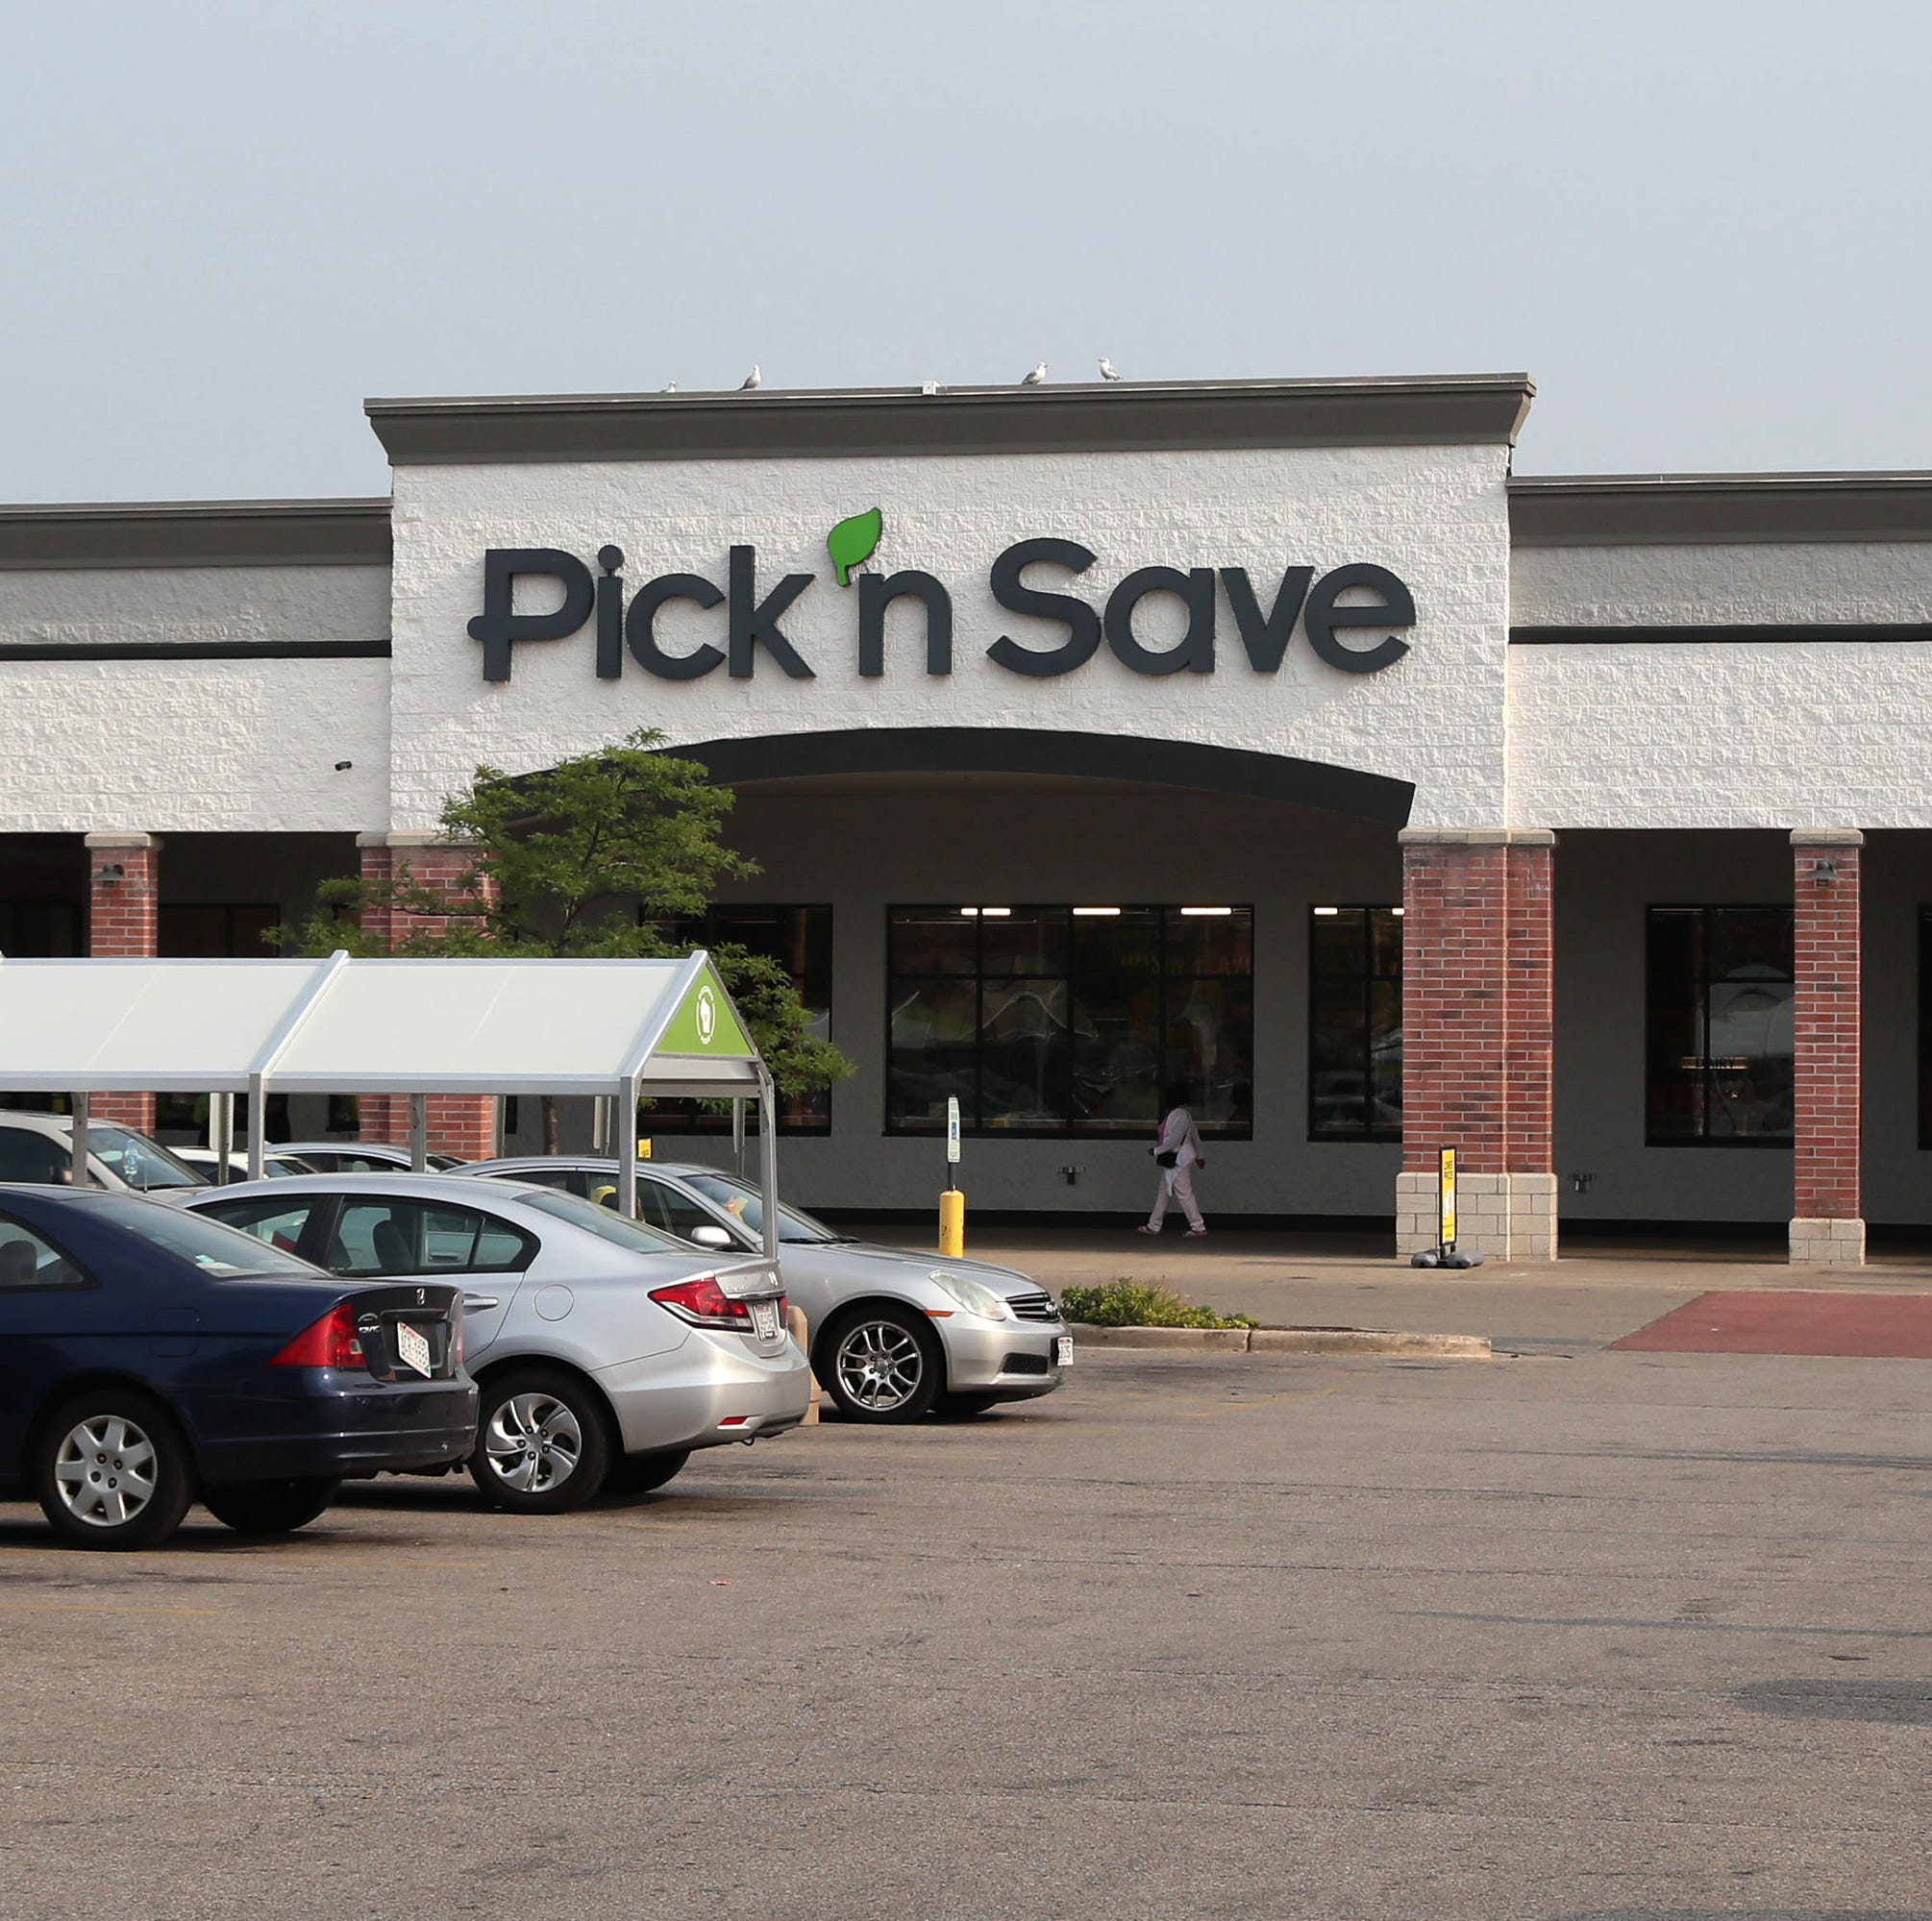 Pick 'n Save at Midtown where a ribbon cutting ceremony was held to celebrating the stores 2 million dollar remodeling at the store and Roundy's investment in Milwaukee's Central City. Here an exterior of the store at 5700 W. Capitol Dr.